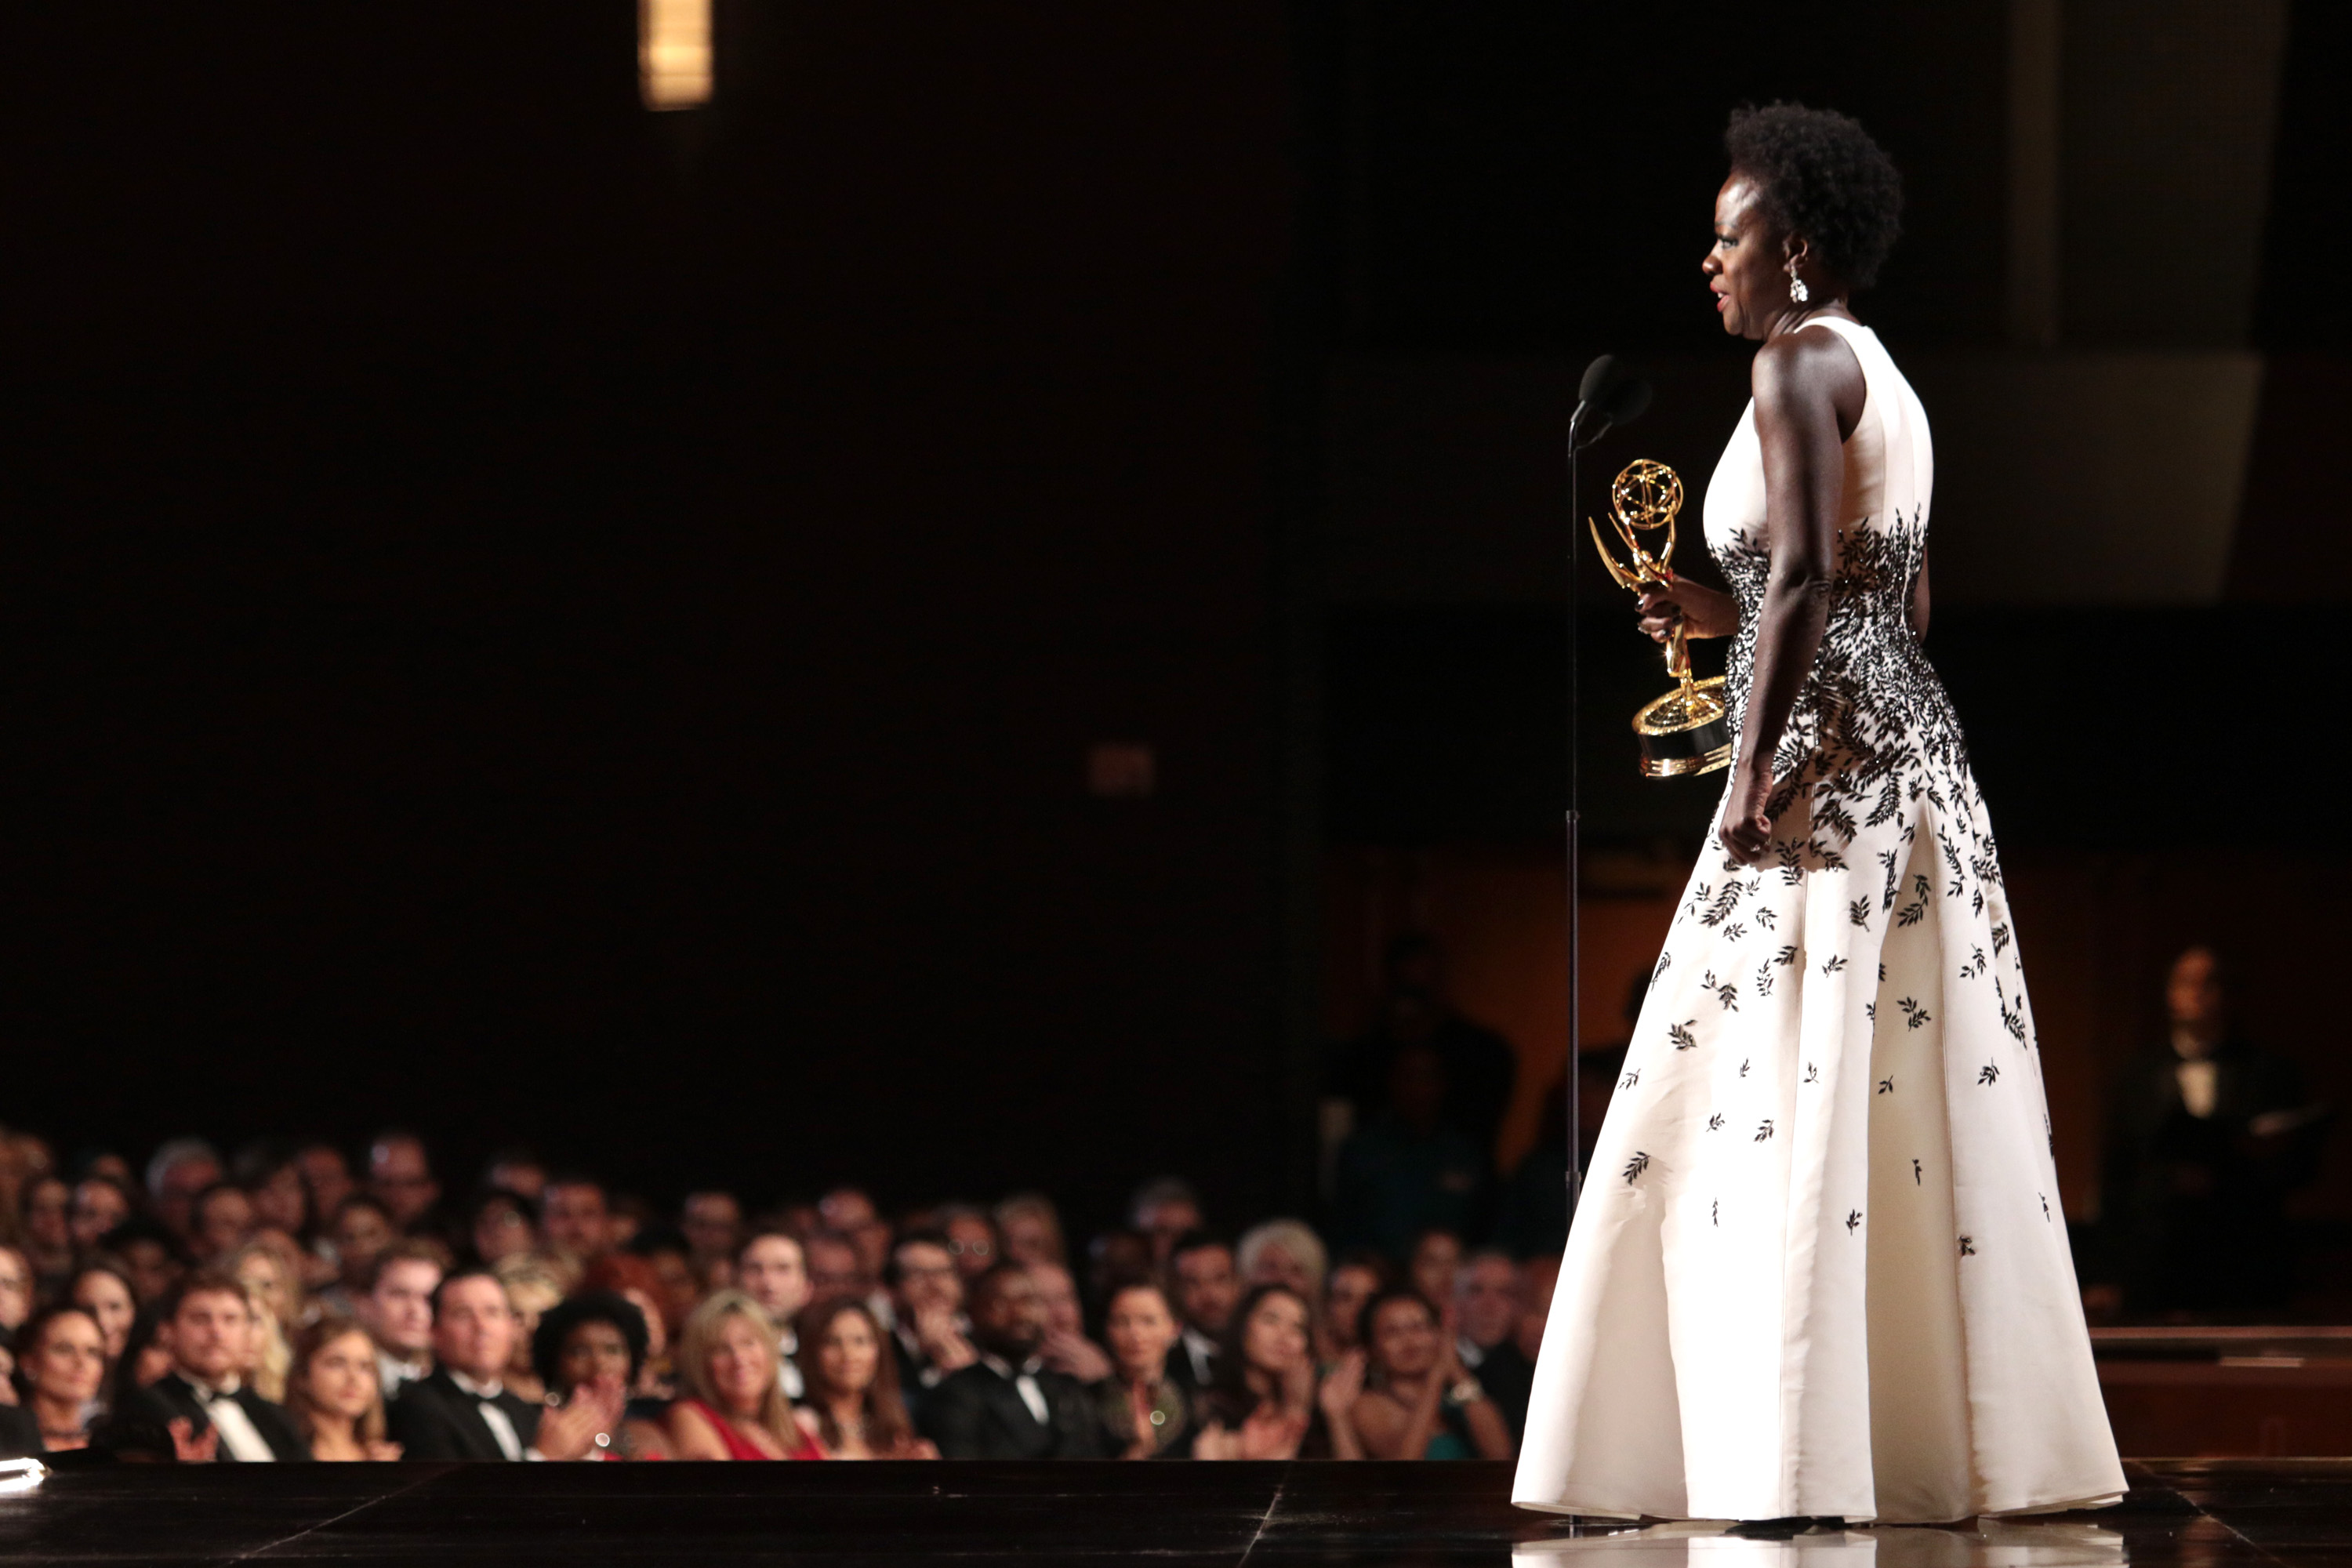 Viola Davis accepts the award for outstanding lead actress in a drama series for How to Get Away With Murder at the 67th Primetime Emmy Awards on Sept. 20, 2015, in Los Angeles.